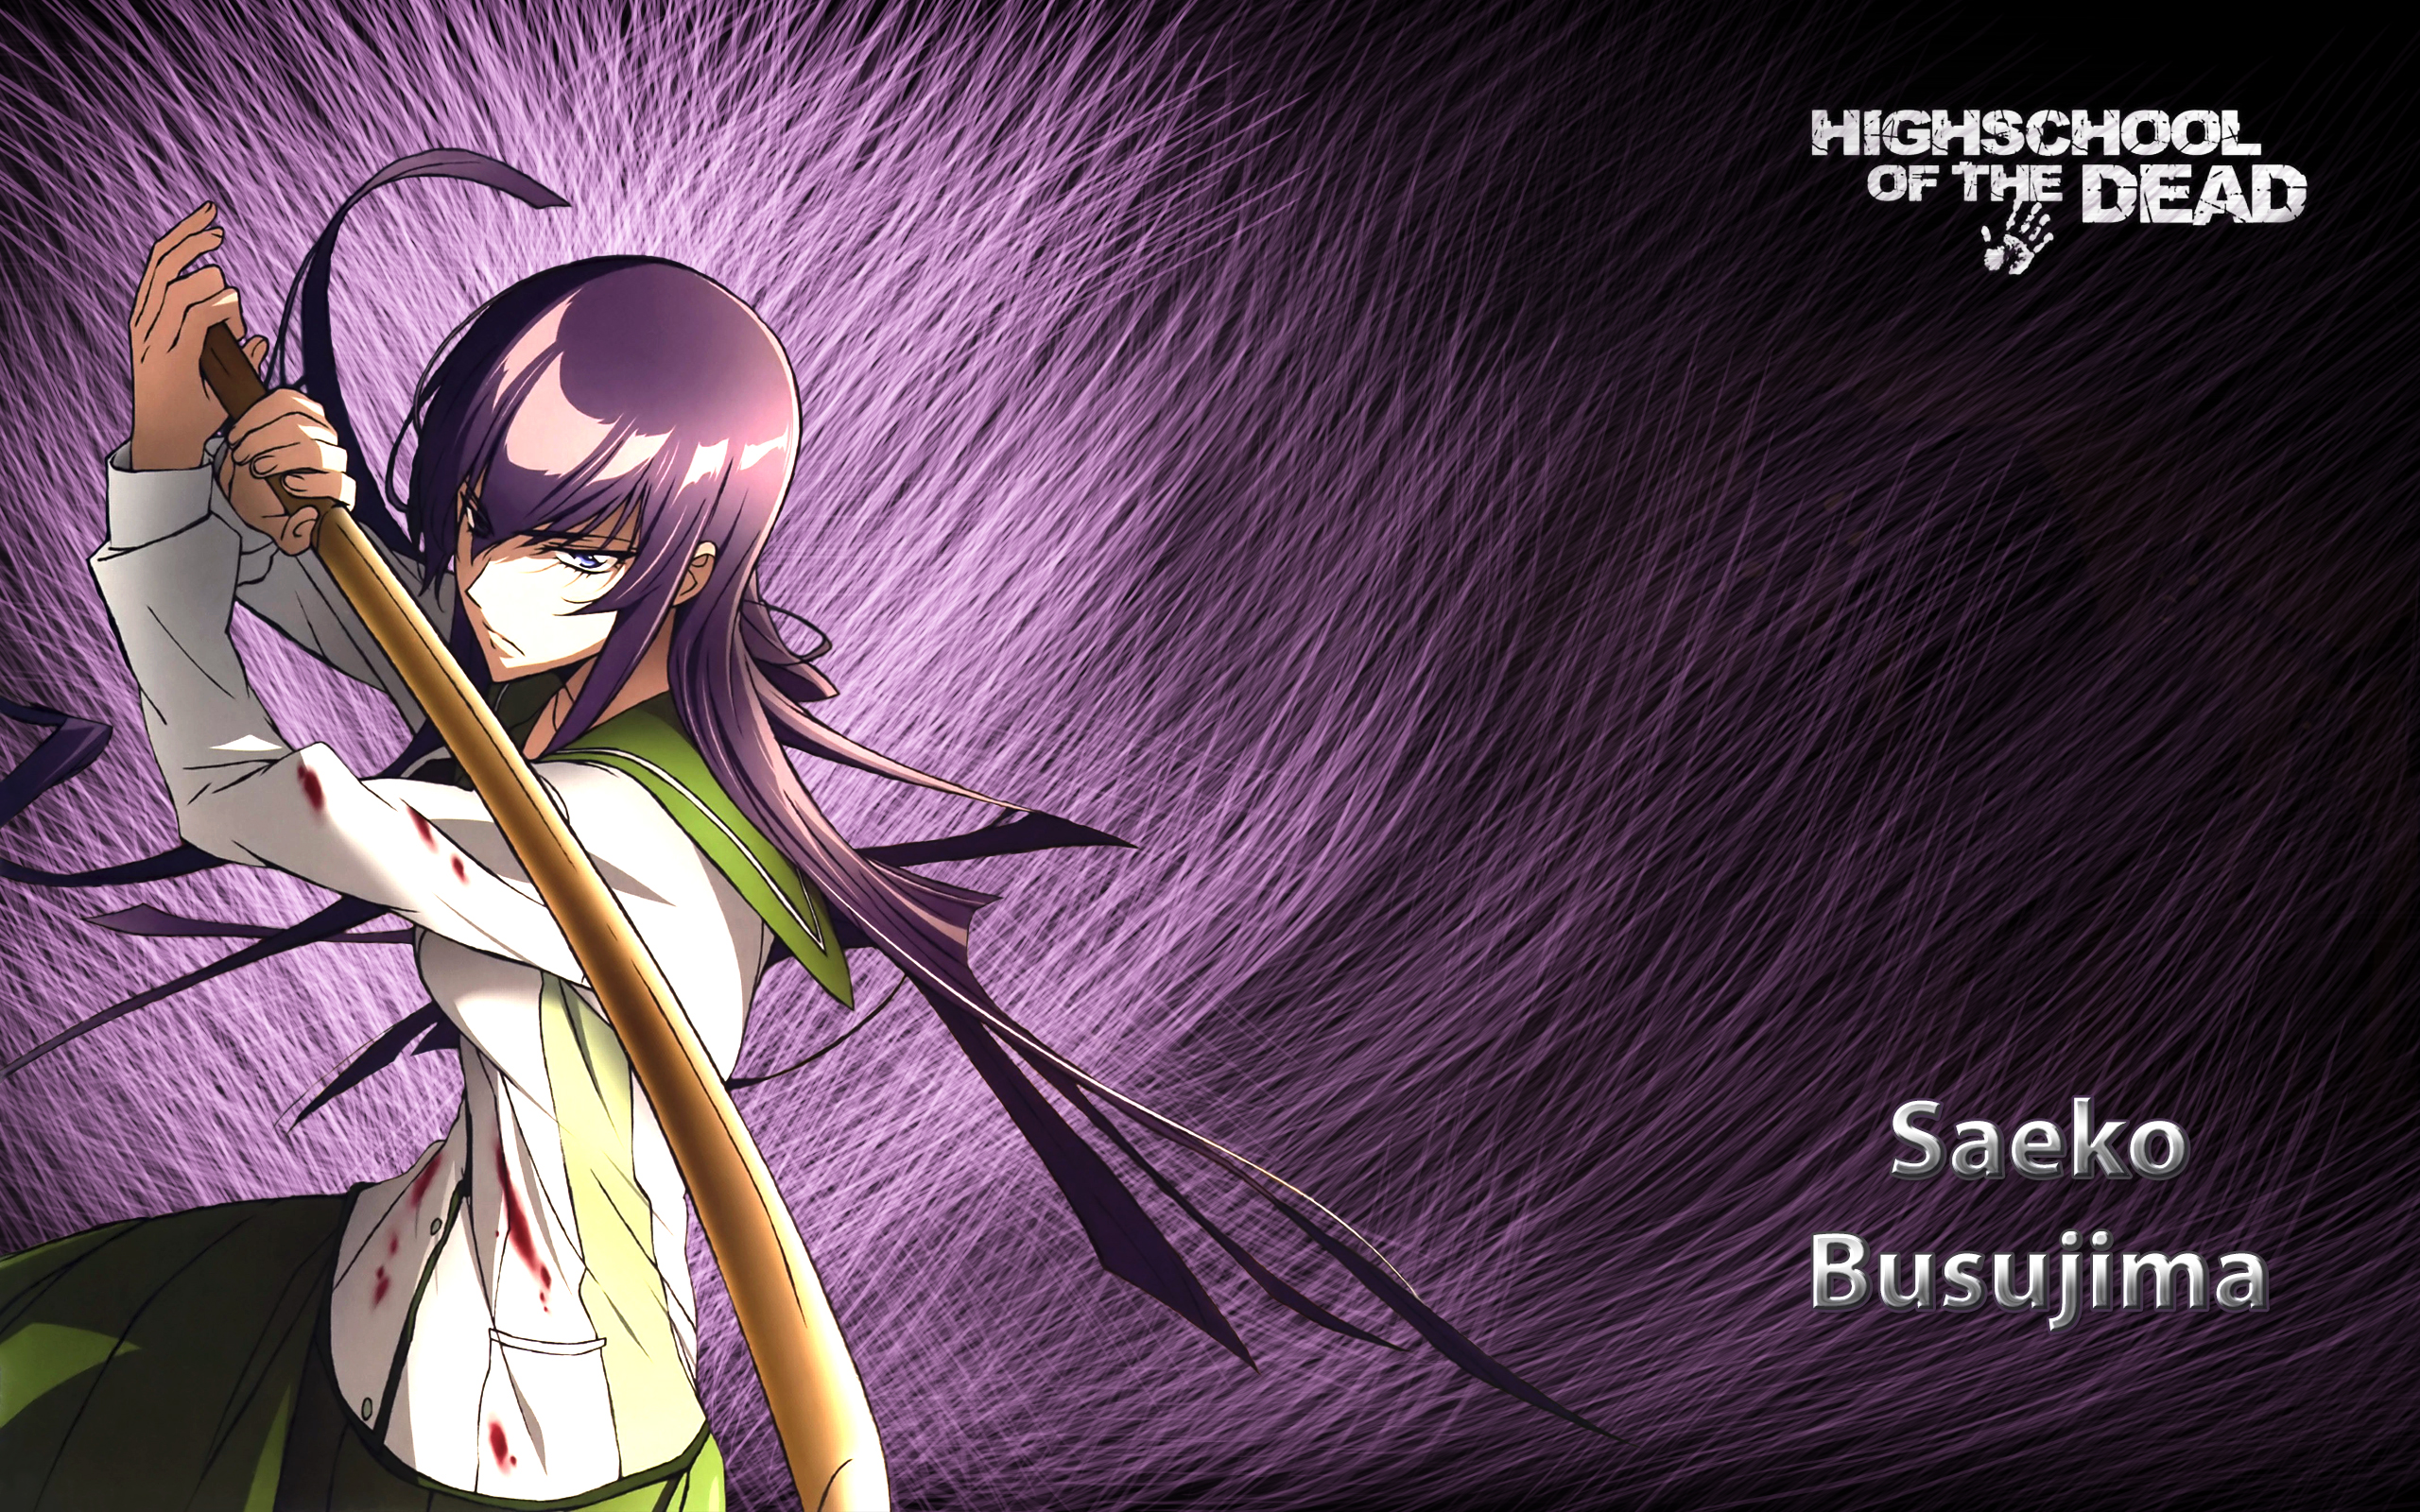 Saeko Busujima Full HD Wallpaper And Background Image